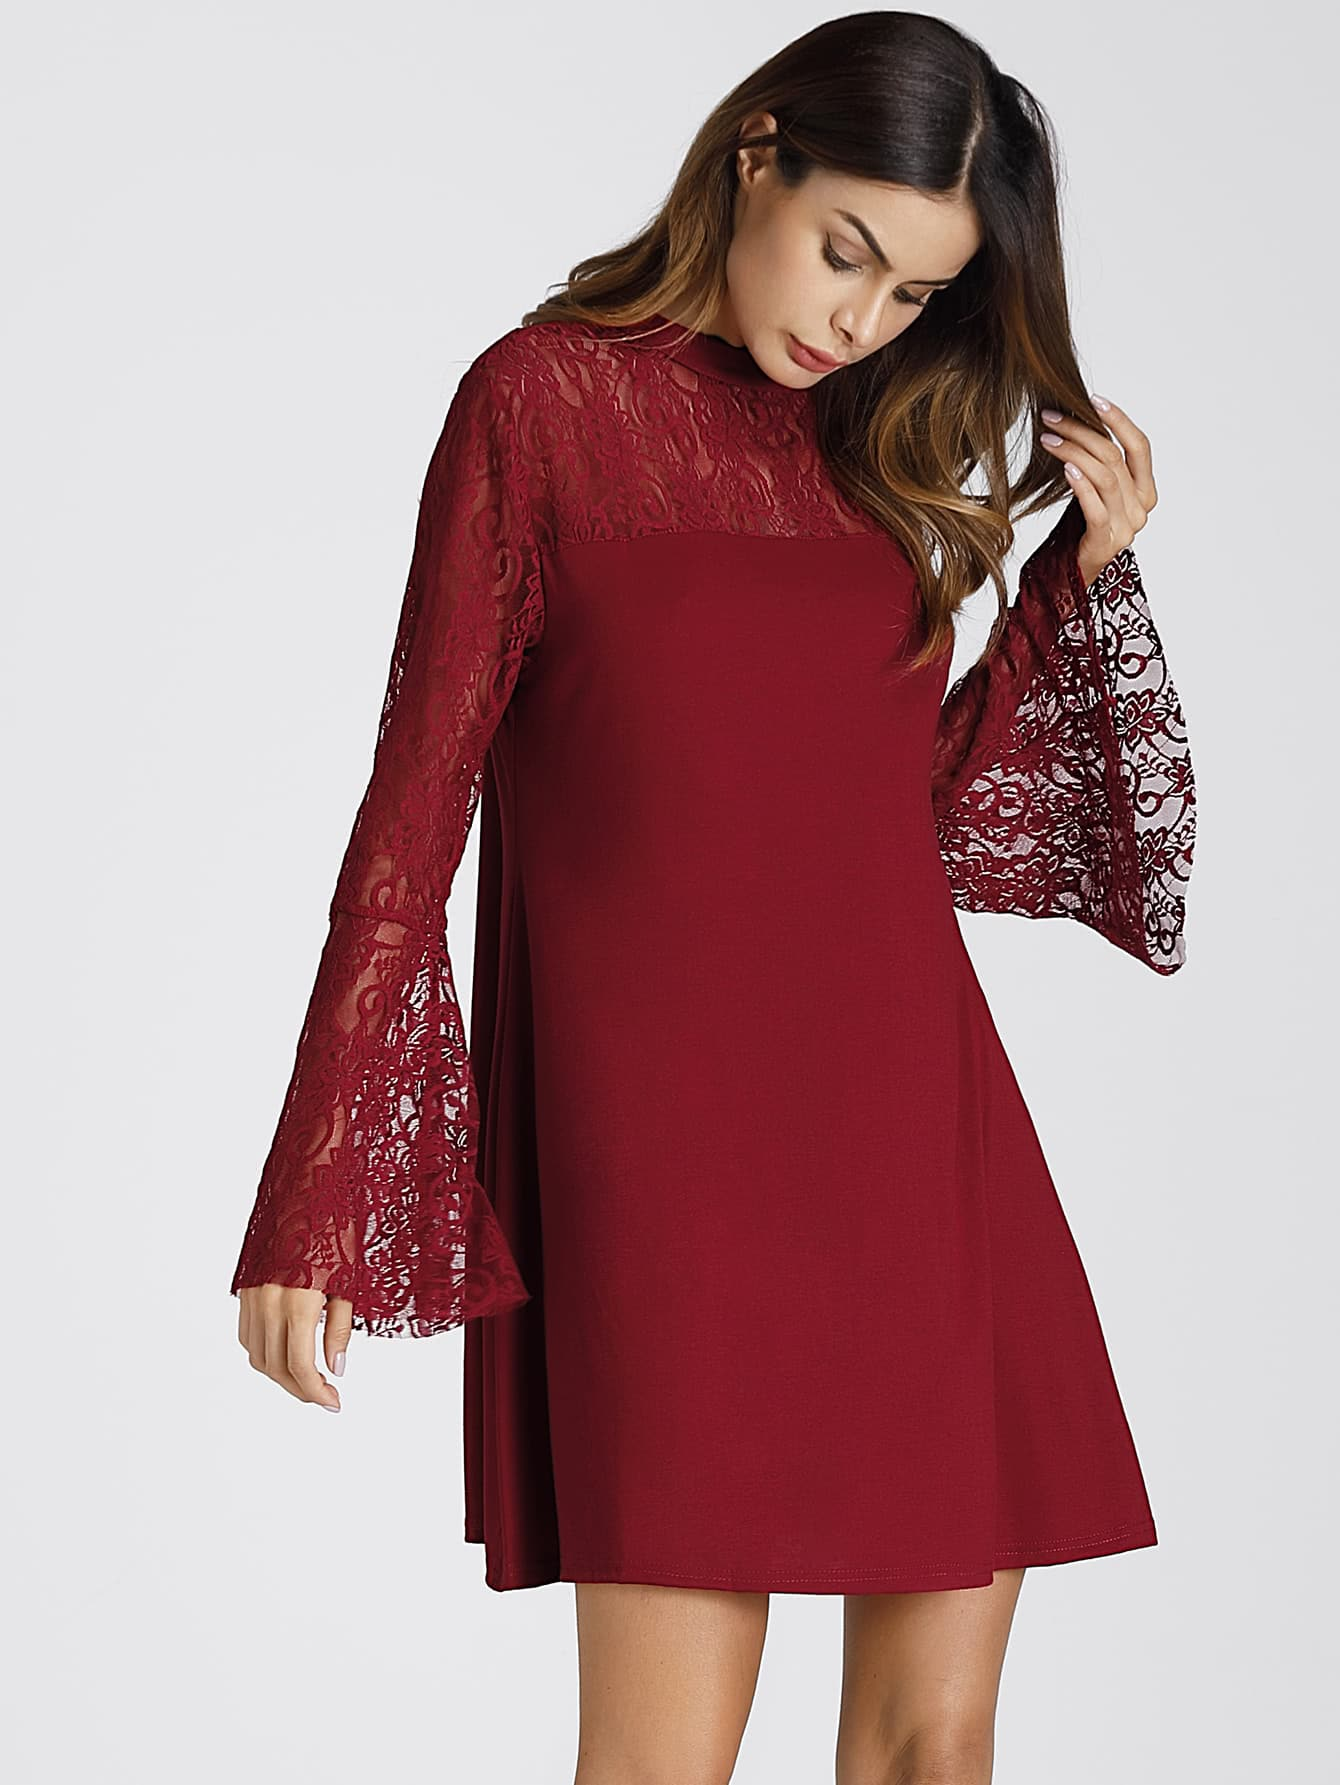 Embroidered Lace Insert Flute Sleeve Dress lace insert fit